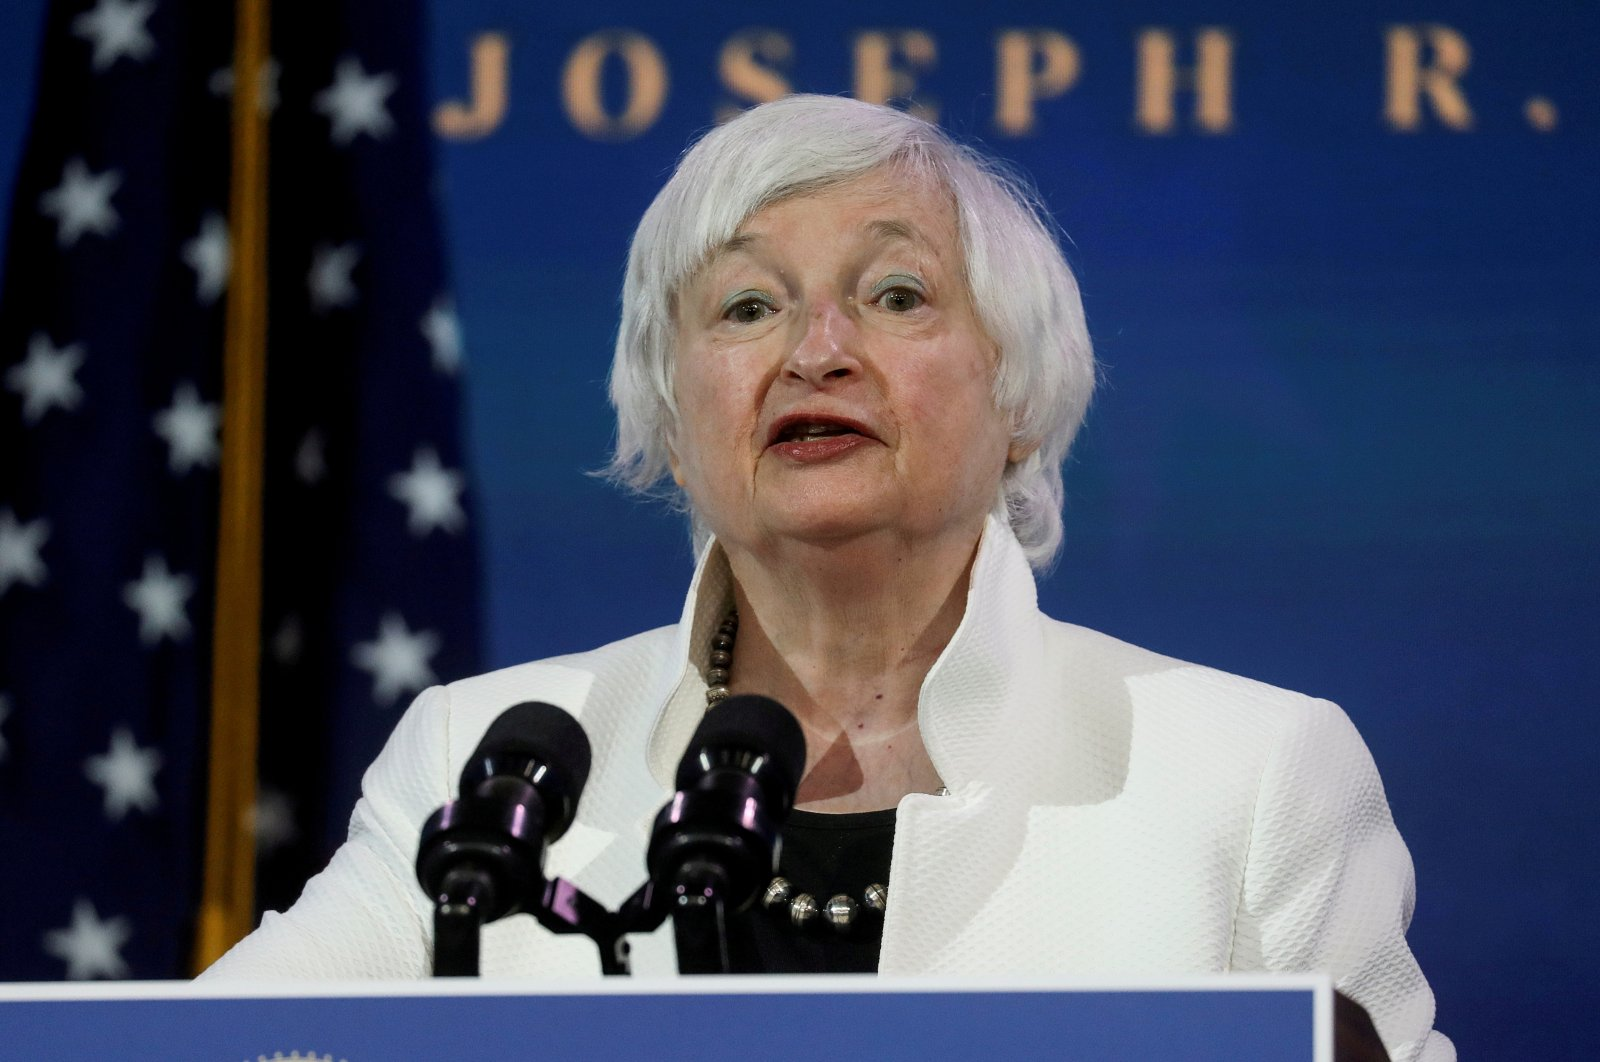 Janet Yellen, U.S. President-elect Joe Biden's nominee to be treasury secretary, speaks as Biden announces nominees and appointees to serve on his economic policy team at his transition headquarters in Wilmington, Delaware, U.S., Dec. 1, 2020. (Reuters Photo)